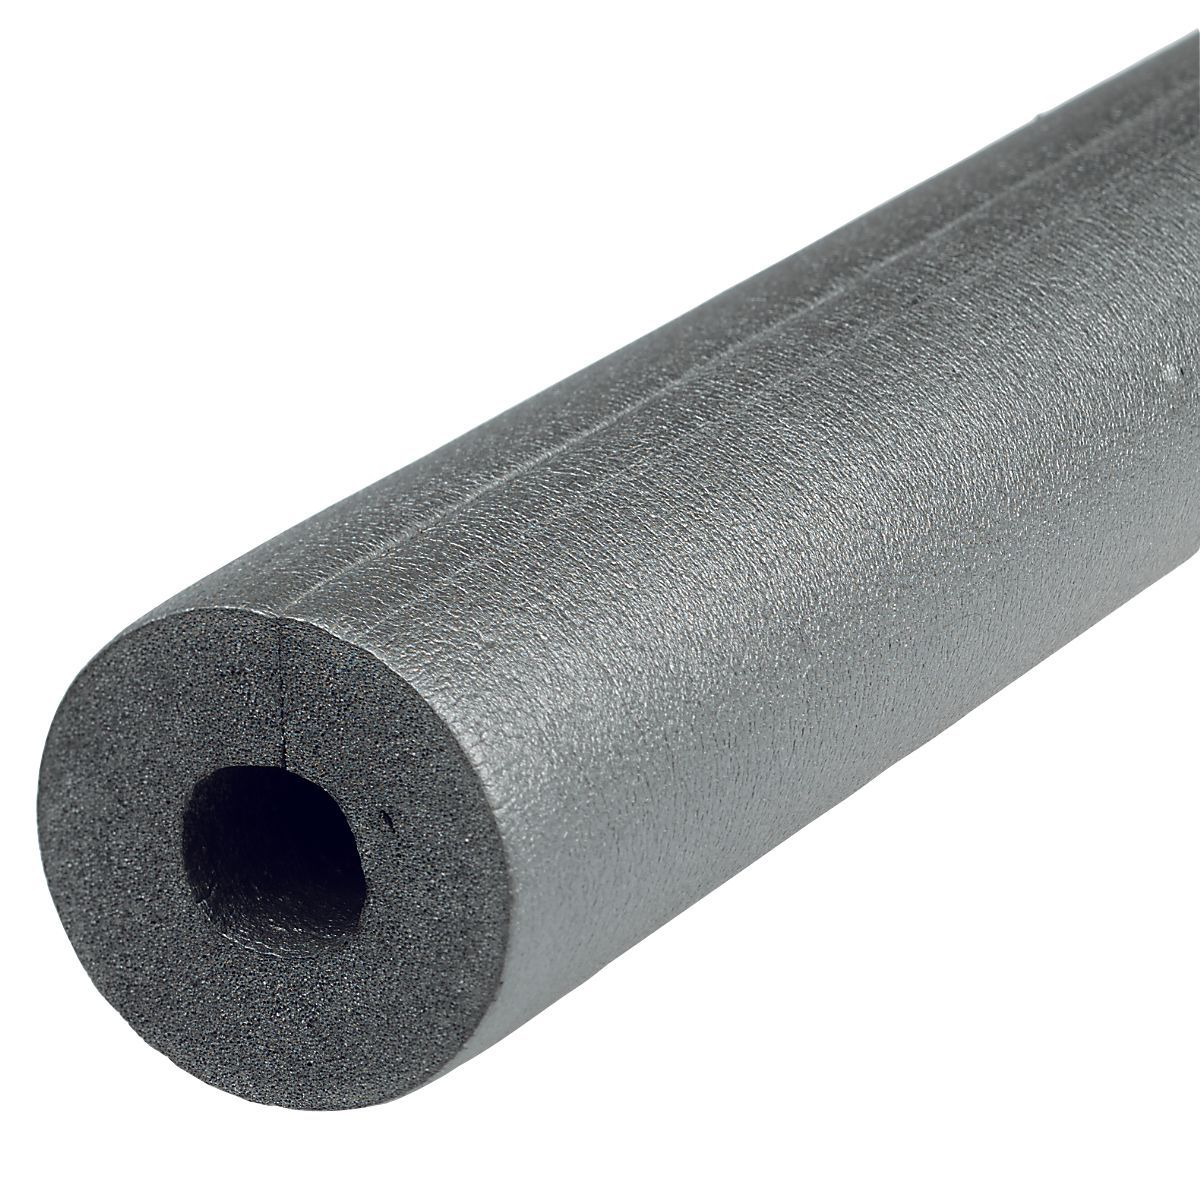 climaflex pipe insulation l 1m dia 22mm t 19mm. Black Bedroom Furniture Sets. Home Design Ideas